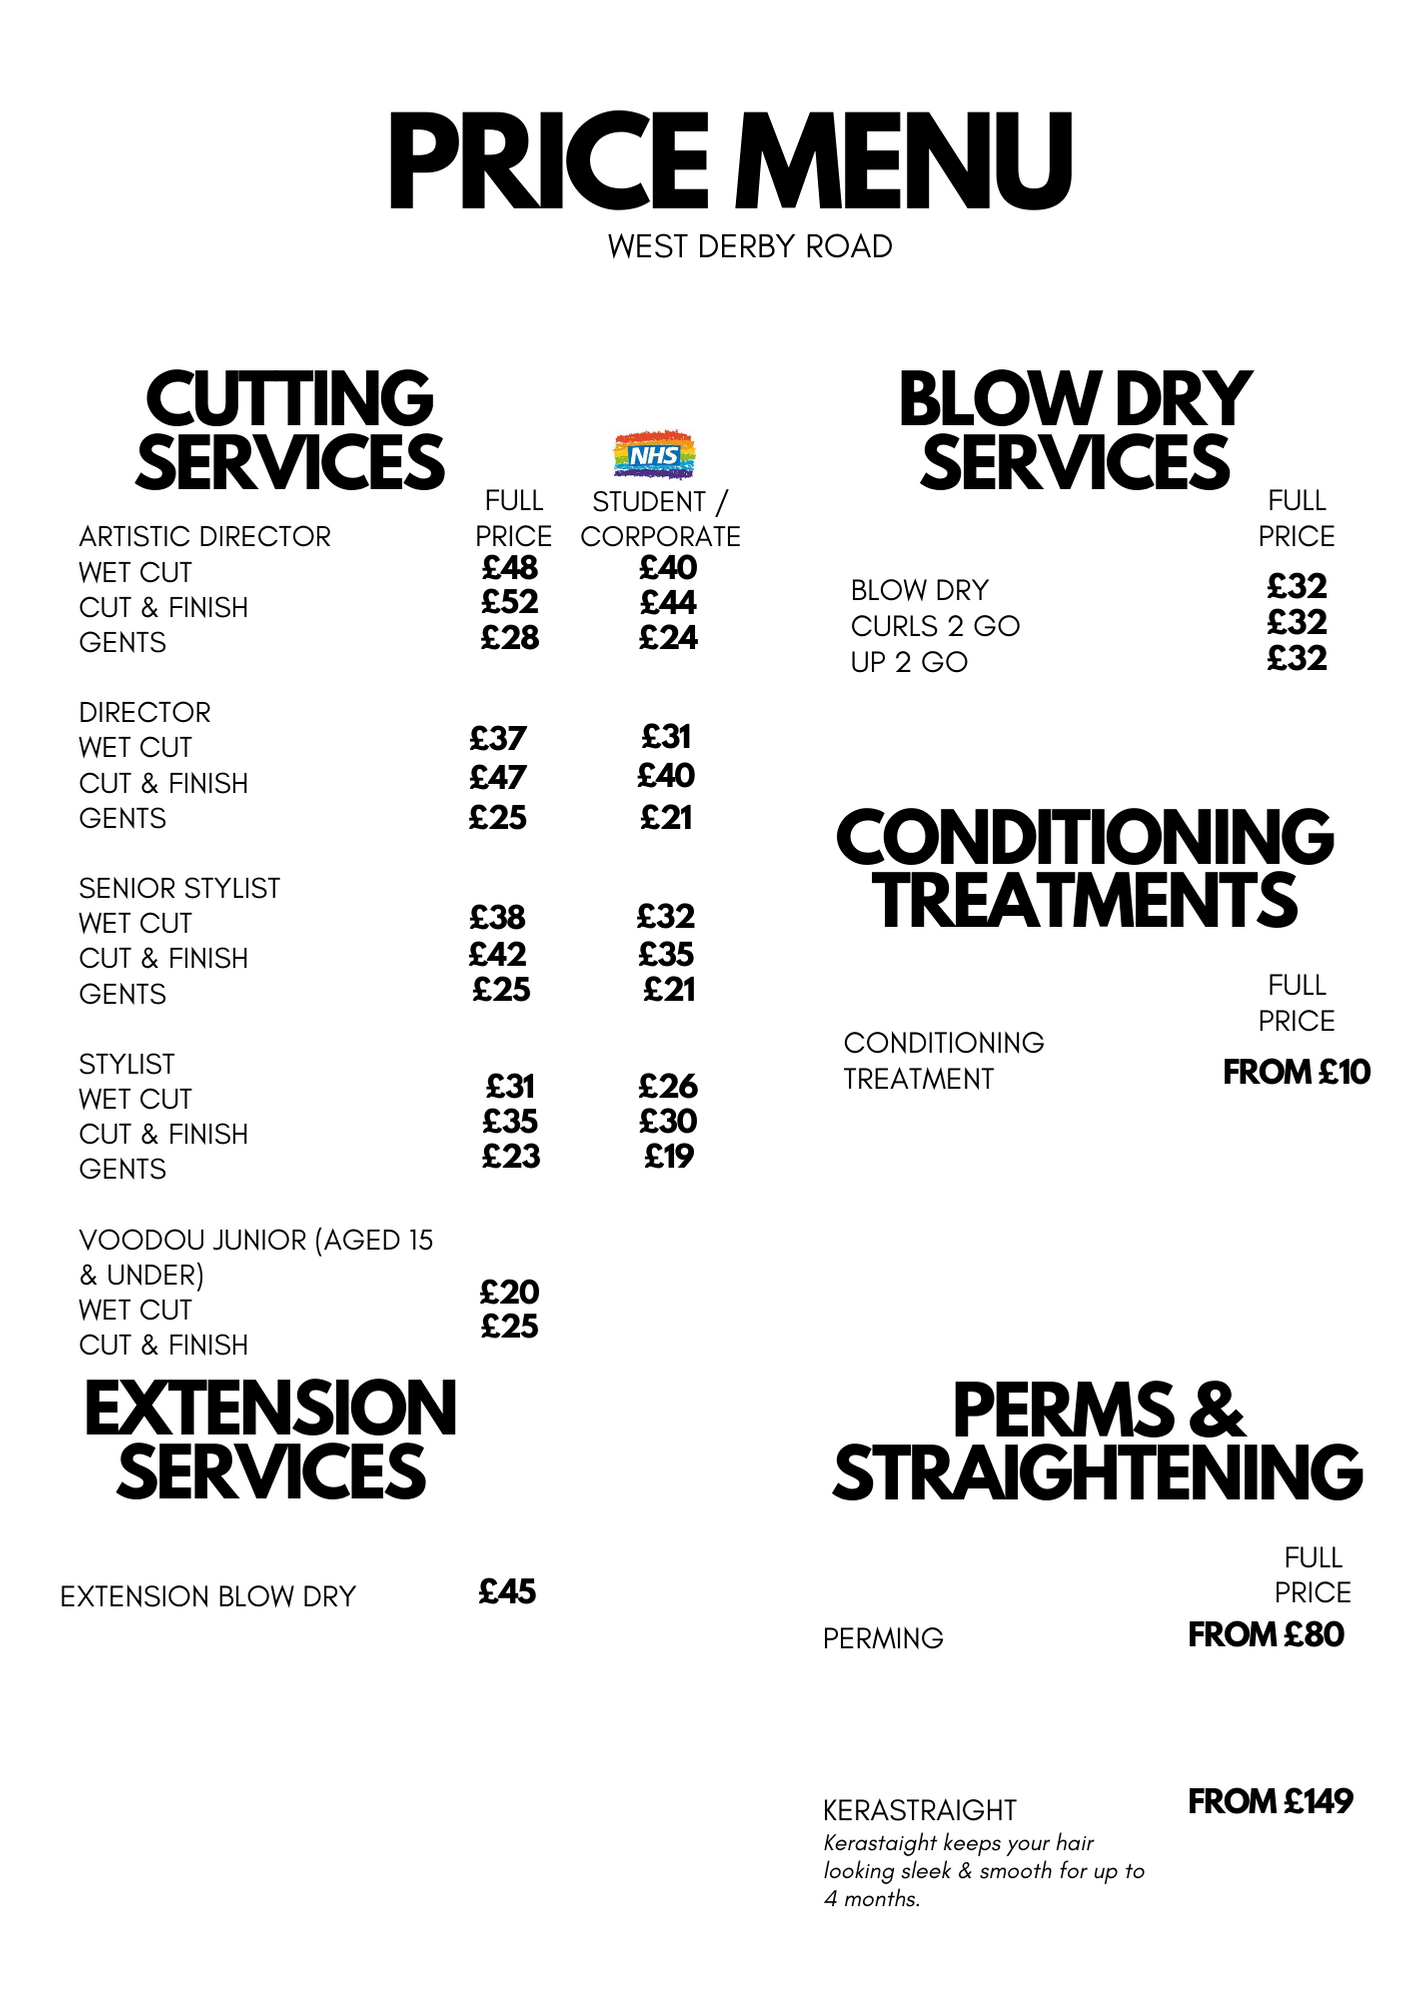 WDR CUTTING NEW PRICE LIST